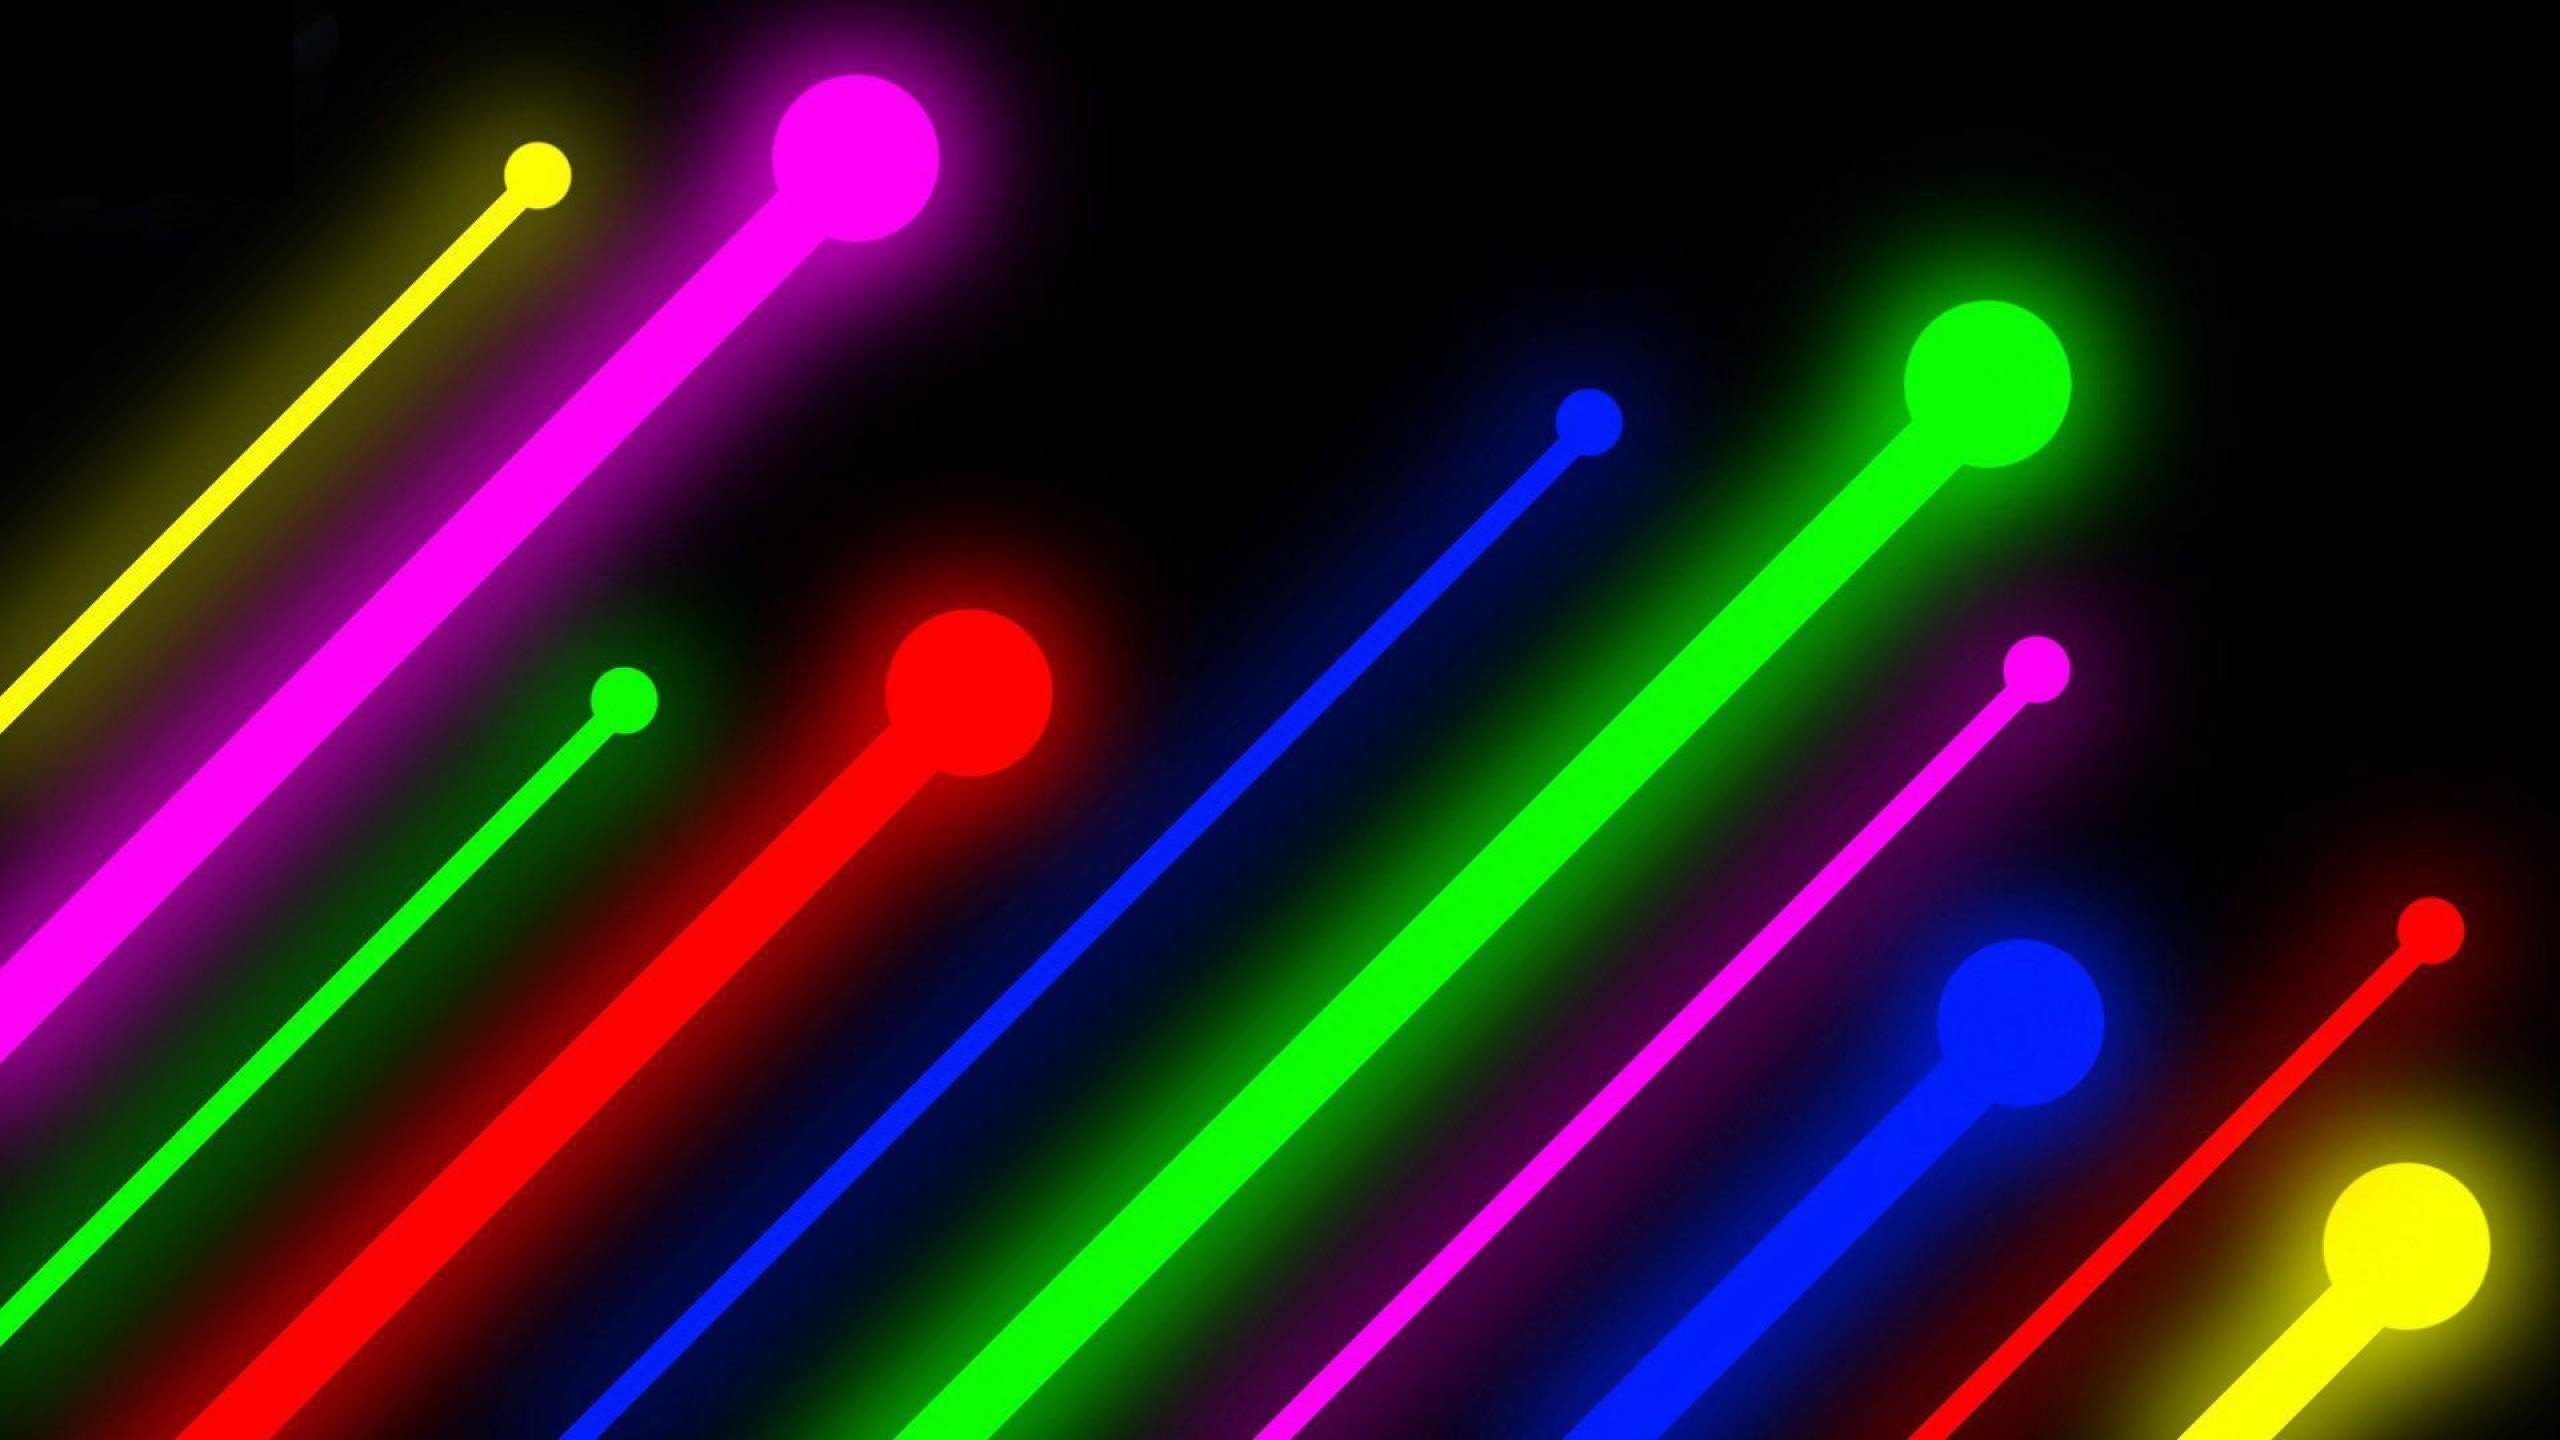 Abstract Neon Wallpaper (64+ images)